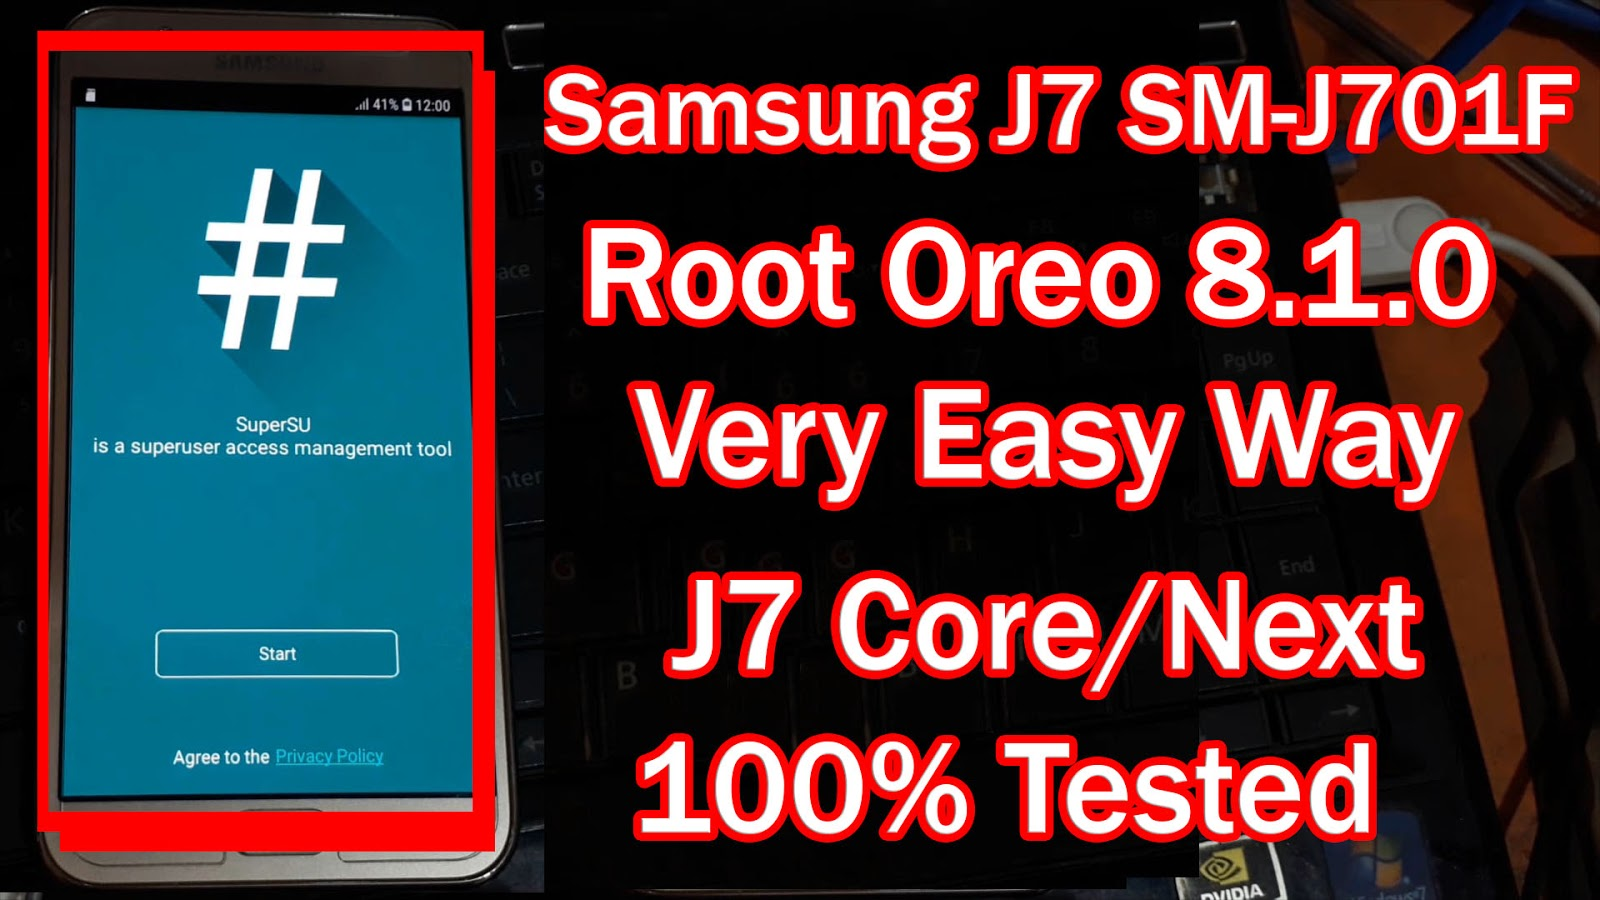 Samsung Galaxy J7 Core/Next (SM-J701F) Oreo8 1 0 Root File Free